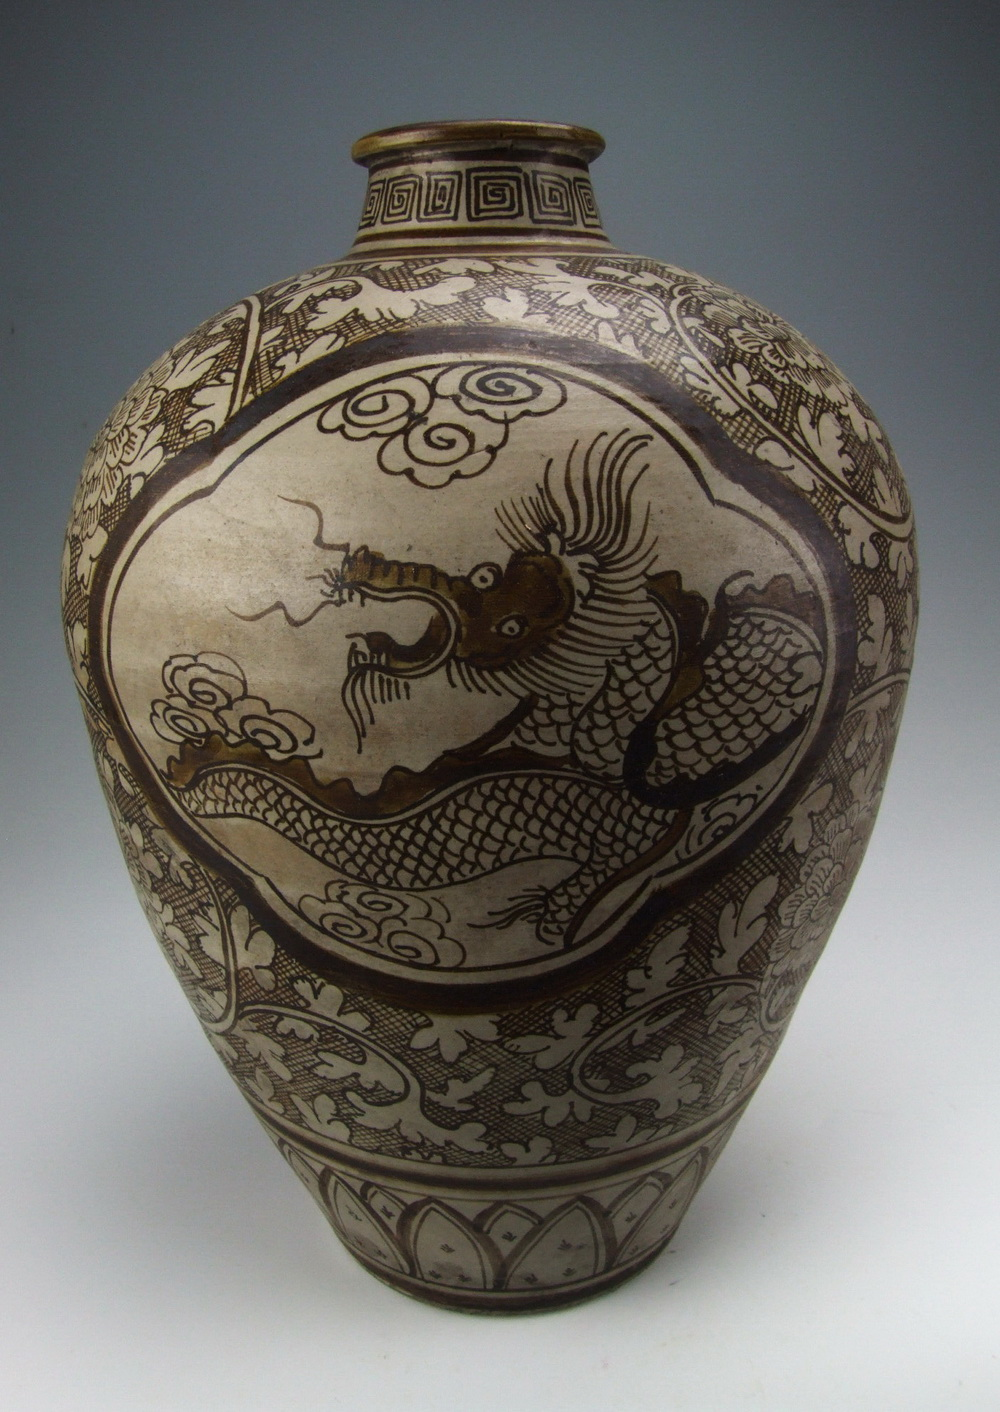 Rare Song Dynasty Jizhou Ware Porcelain Vase With Dragon Deco